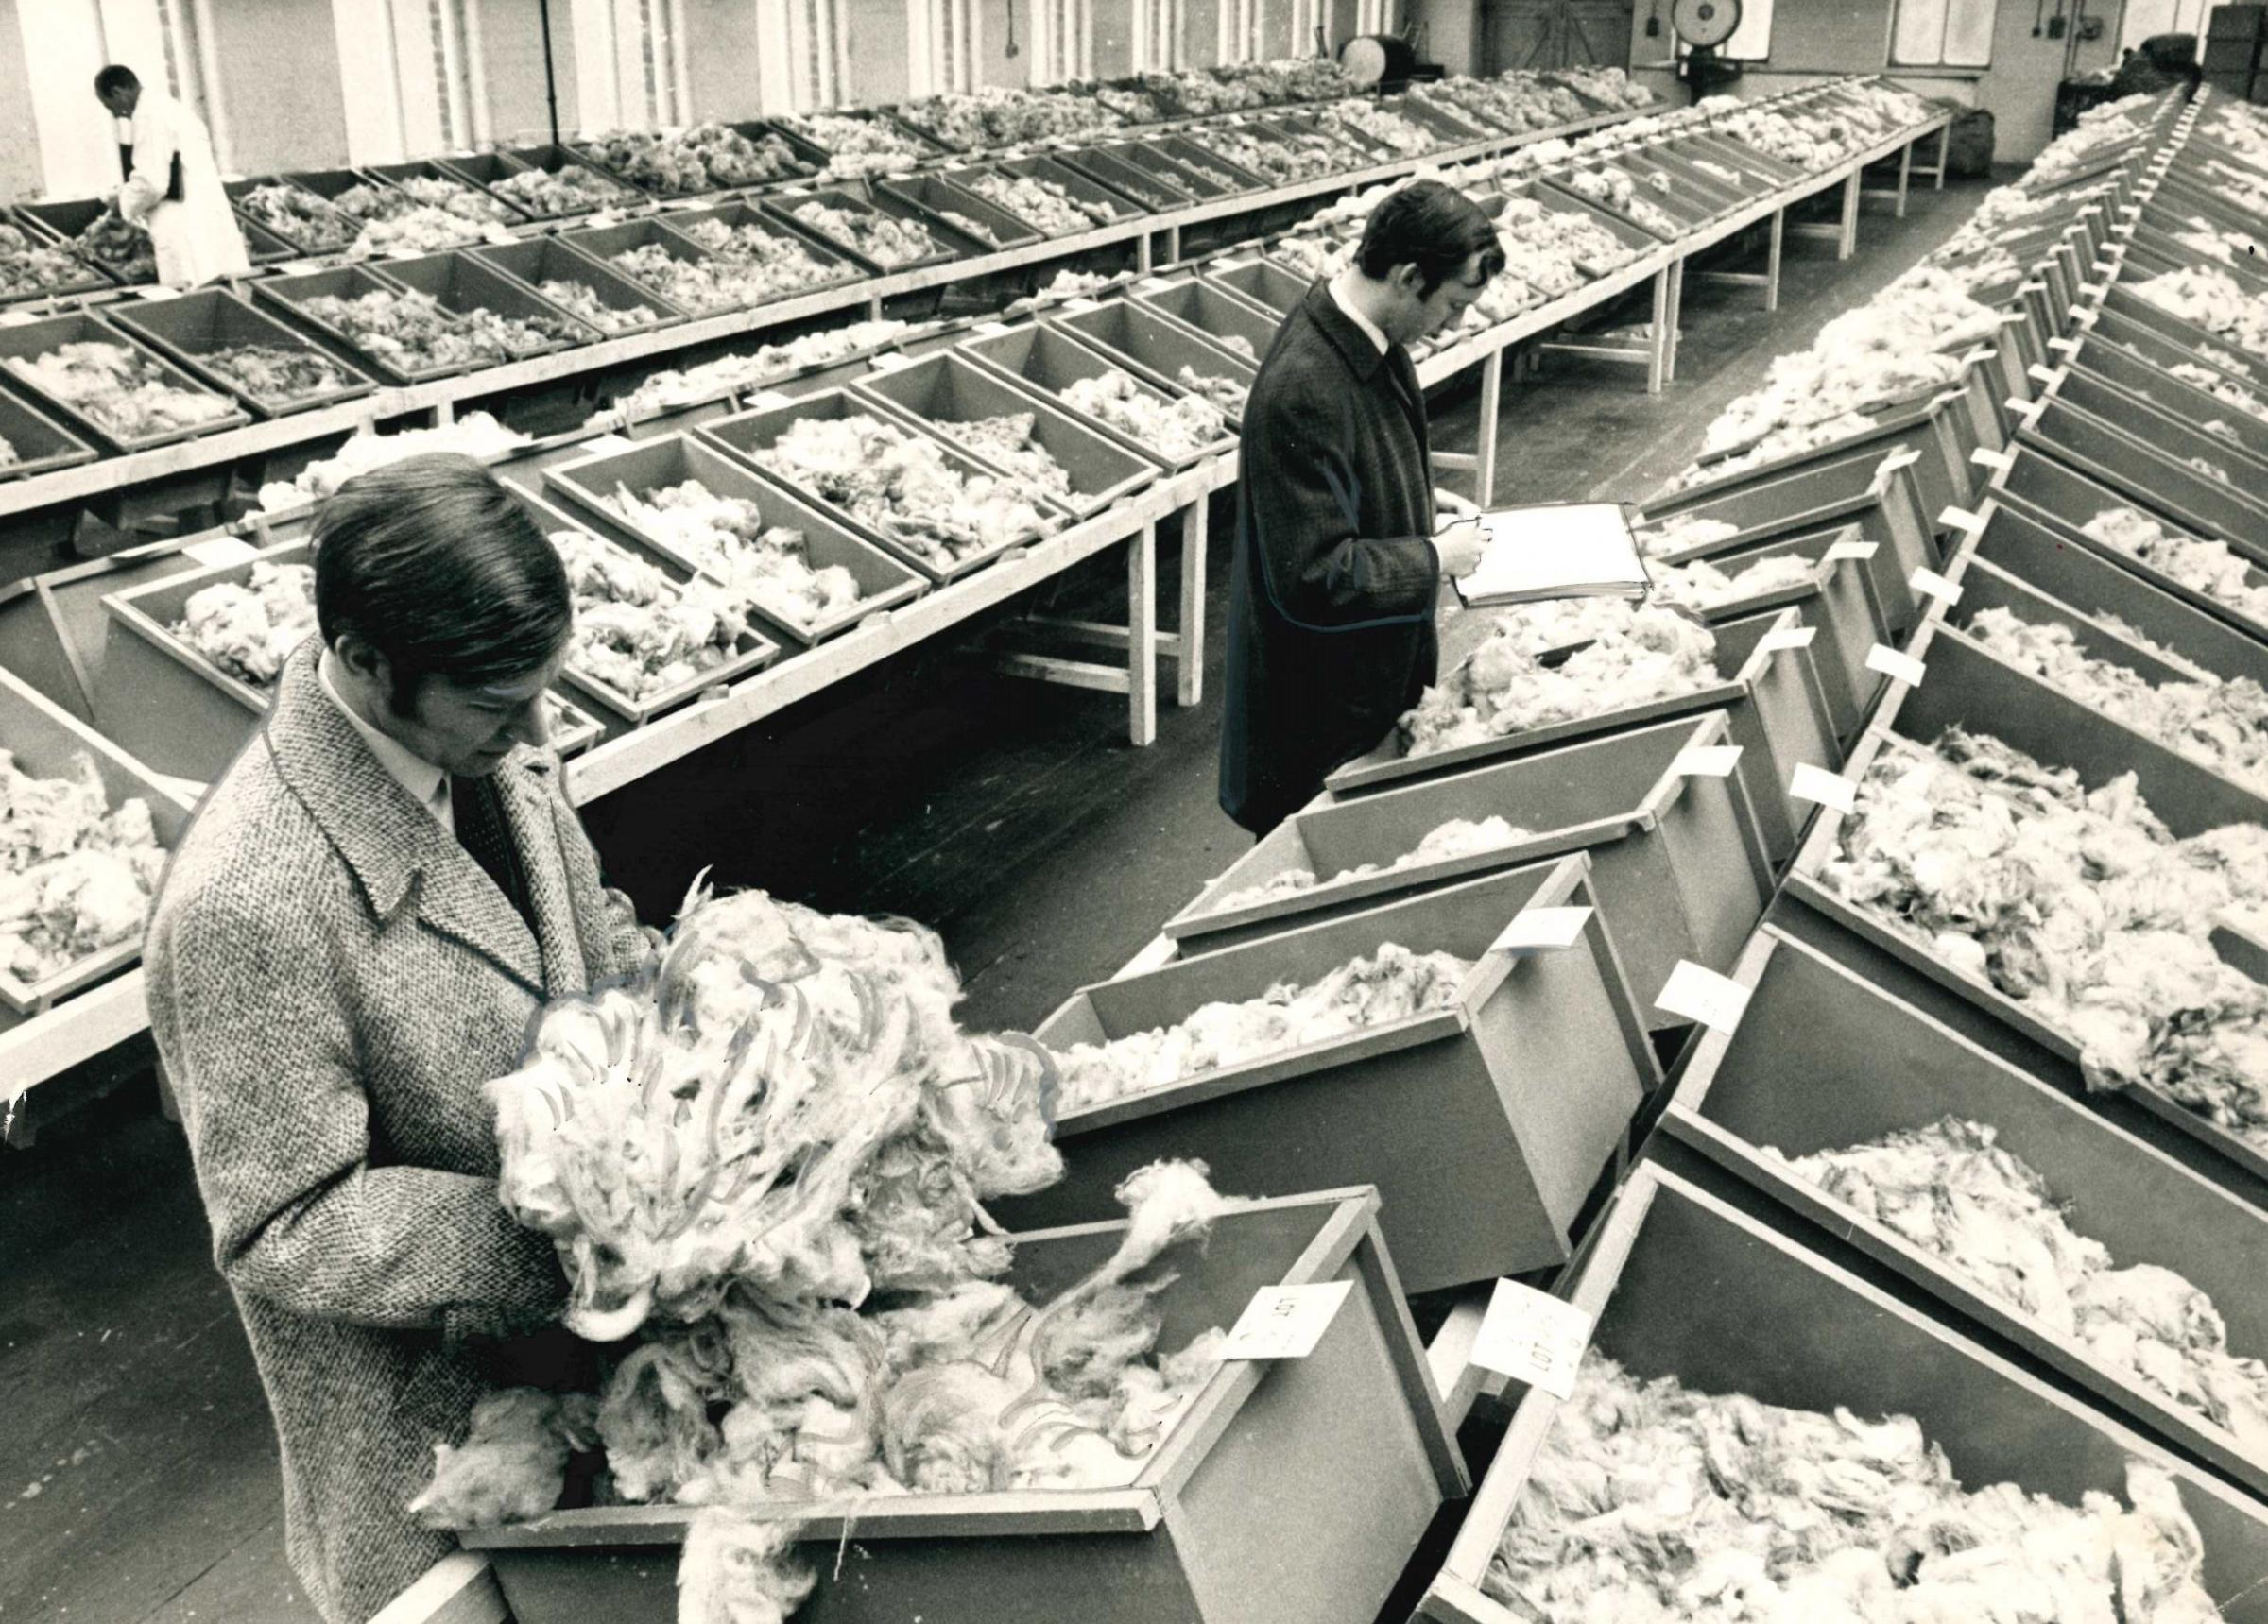 REMEMBER WHEN: The historic Conditioning House and photos of Bradford's rich textile industry